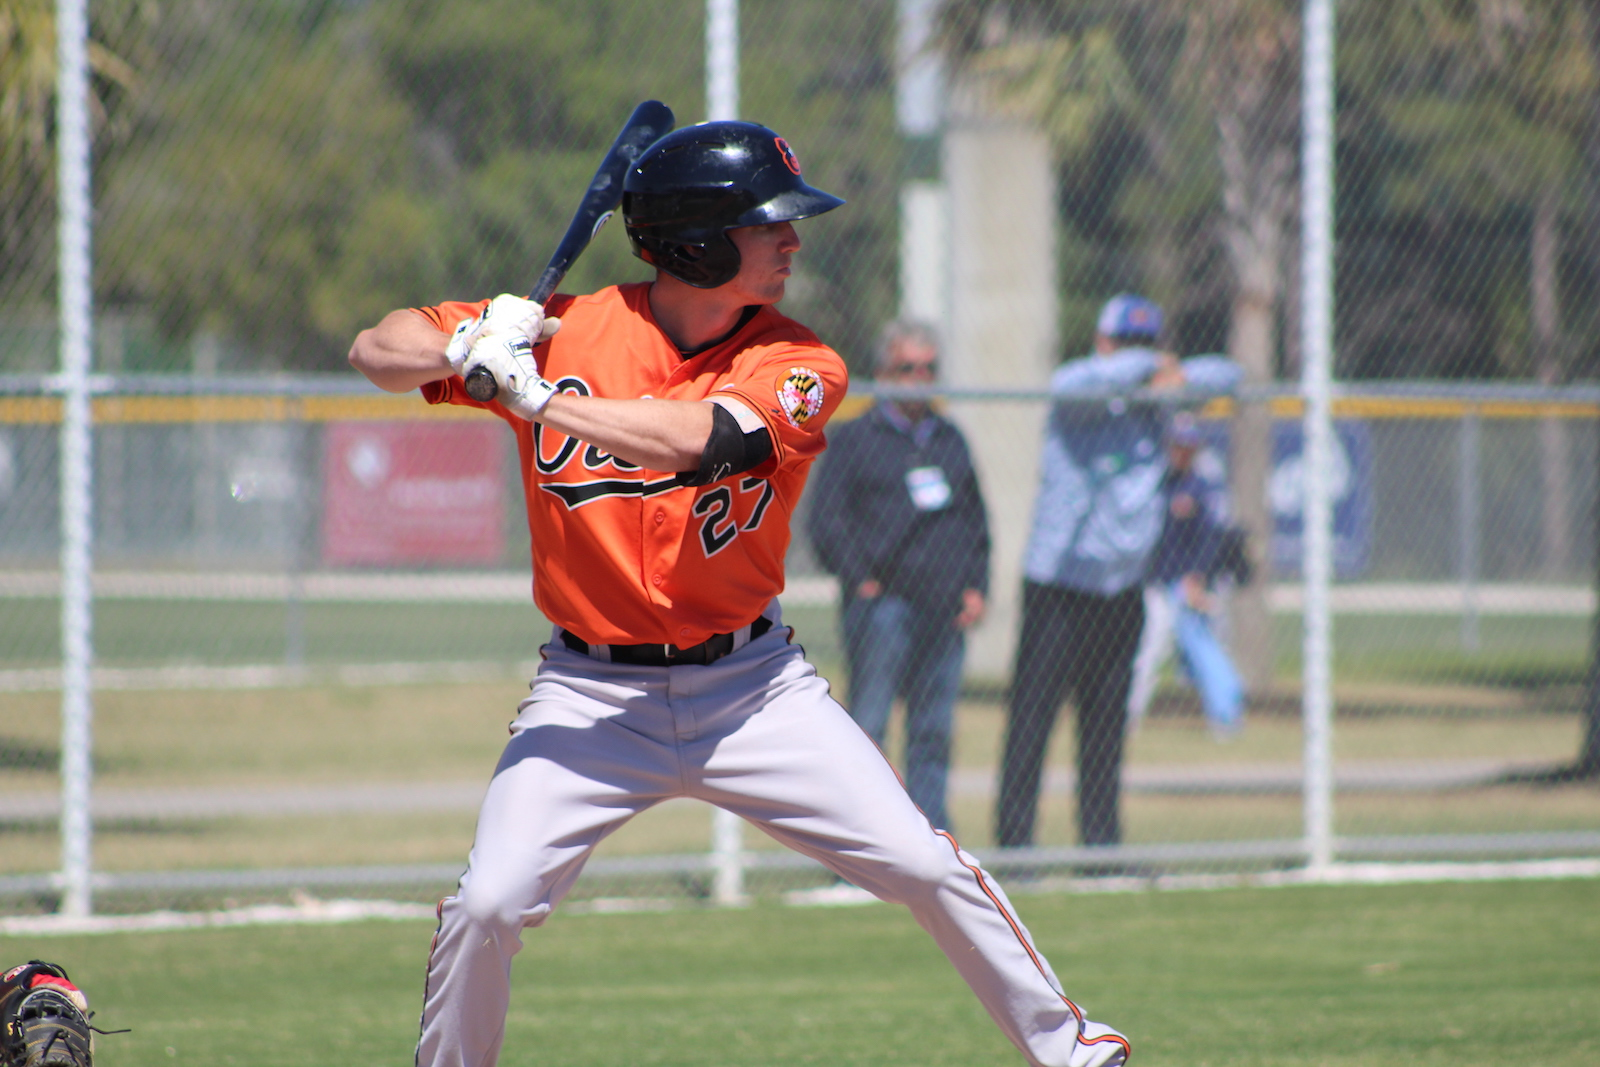 Camp des juniors : Hall et les Orioles battent le Canada